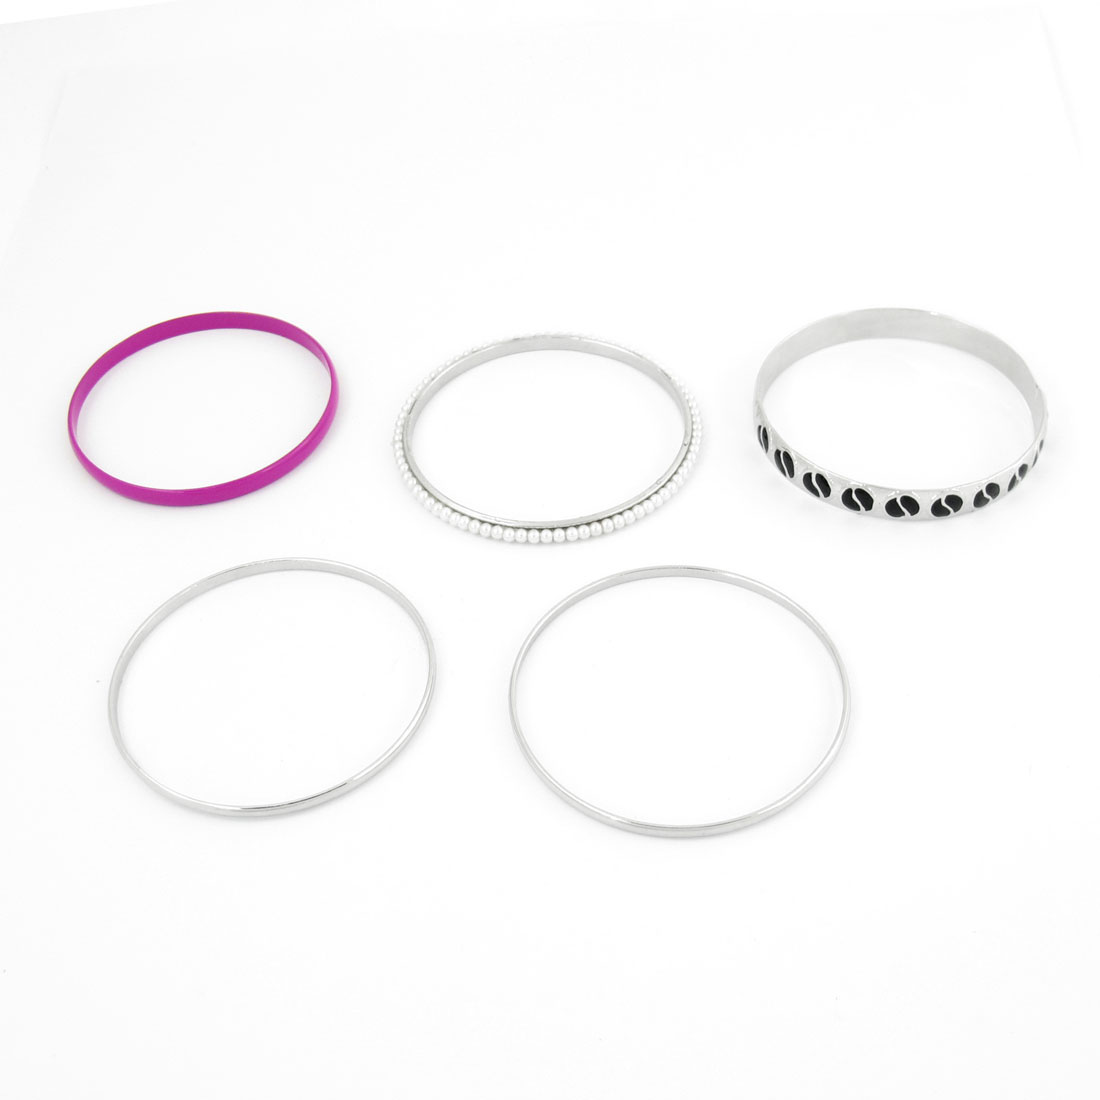 5 Pcs Silver Tone Fuchsia Bears Decor Bracelet Bangle for Lady